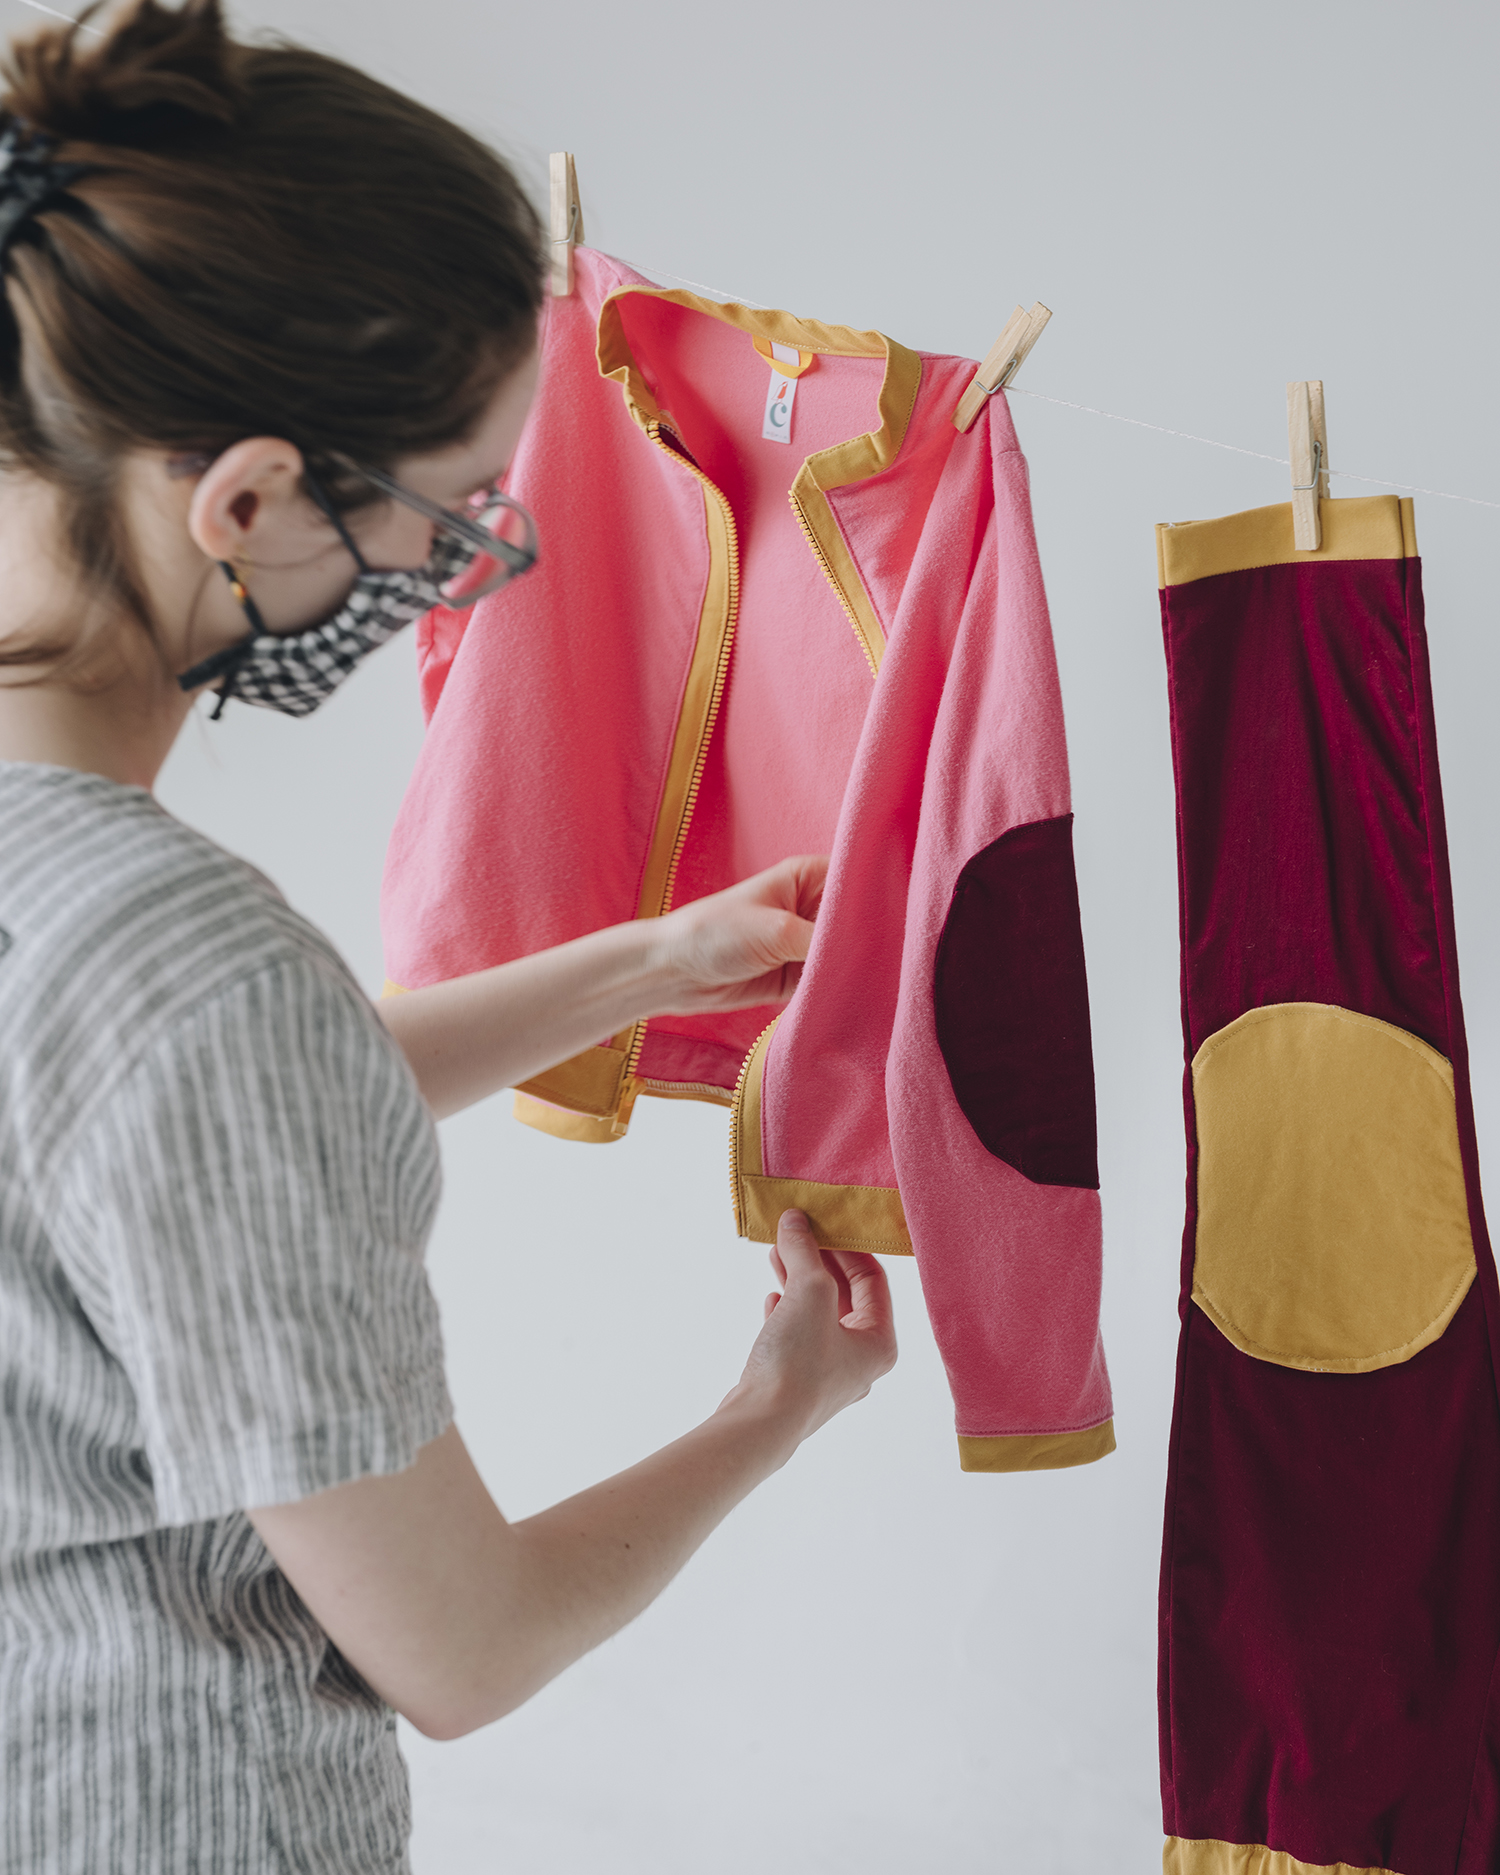 Daeya Shealy hangs clothes she designed from a clothesline.